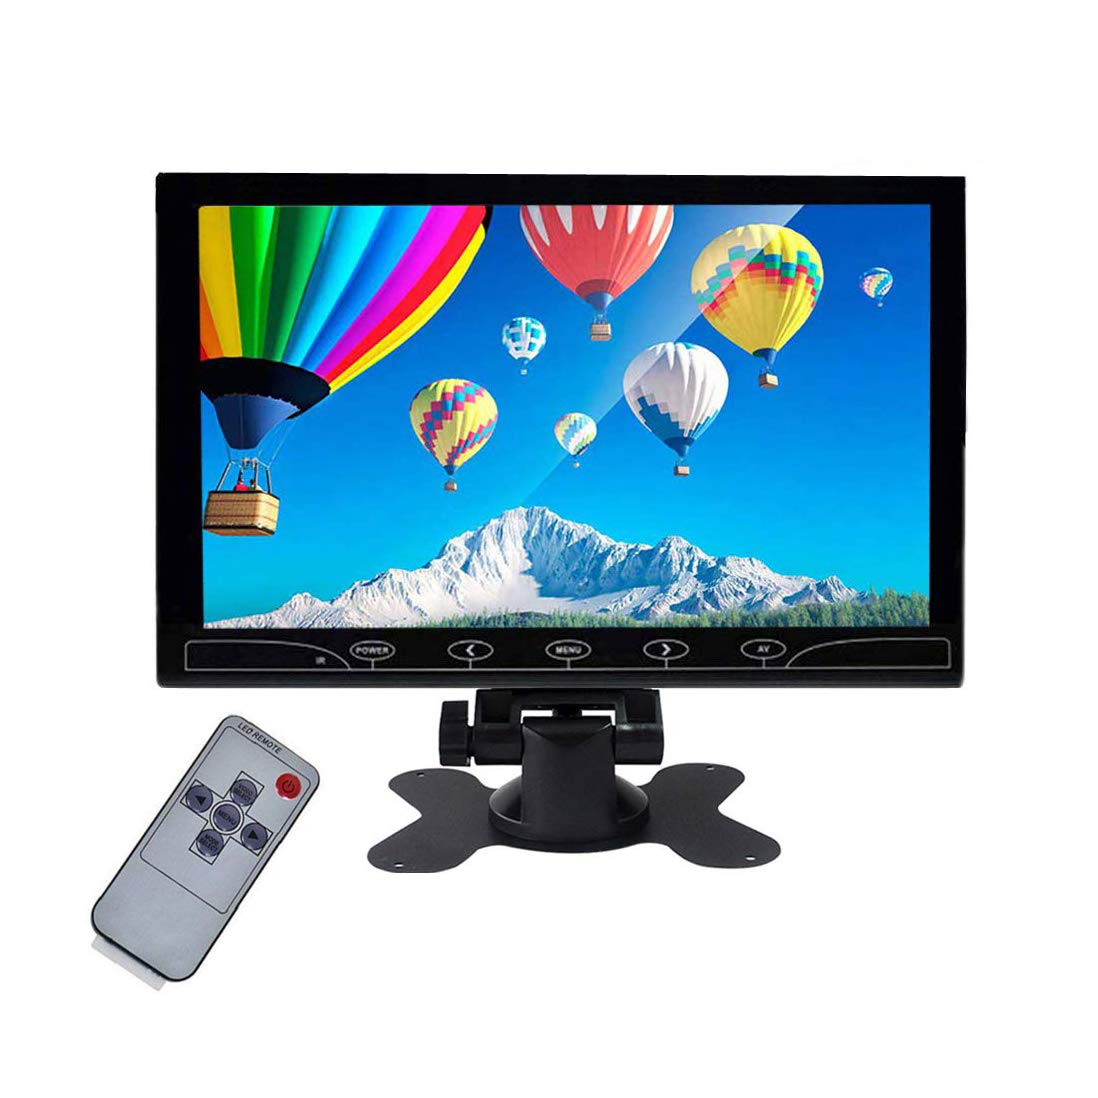 Beyi 10.1'' inch Monitor Small Portable Color Display Screen, 1024X600 LED Screen Bracket&Remote Control with HDMI/VGA/AV Input Built-in Speakers for DVR PC, Security Camera, Raspberry Pi, TV Box by BEYI-US